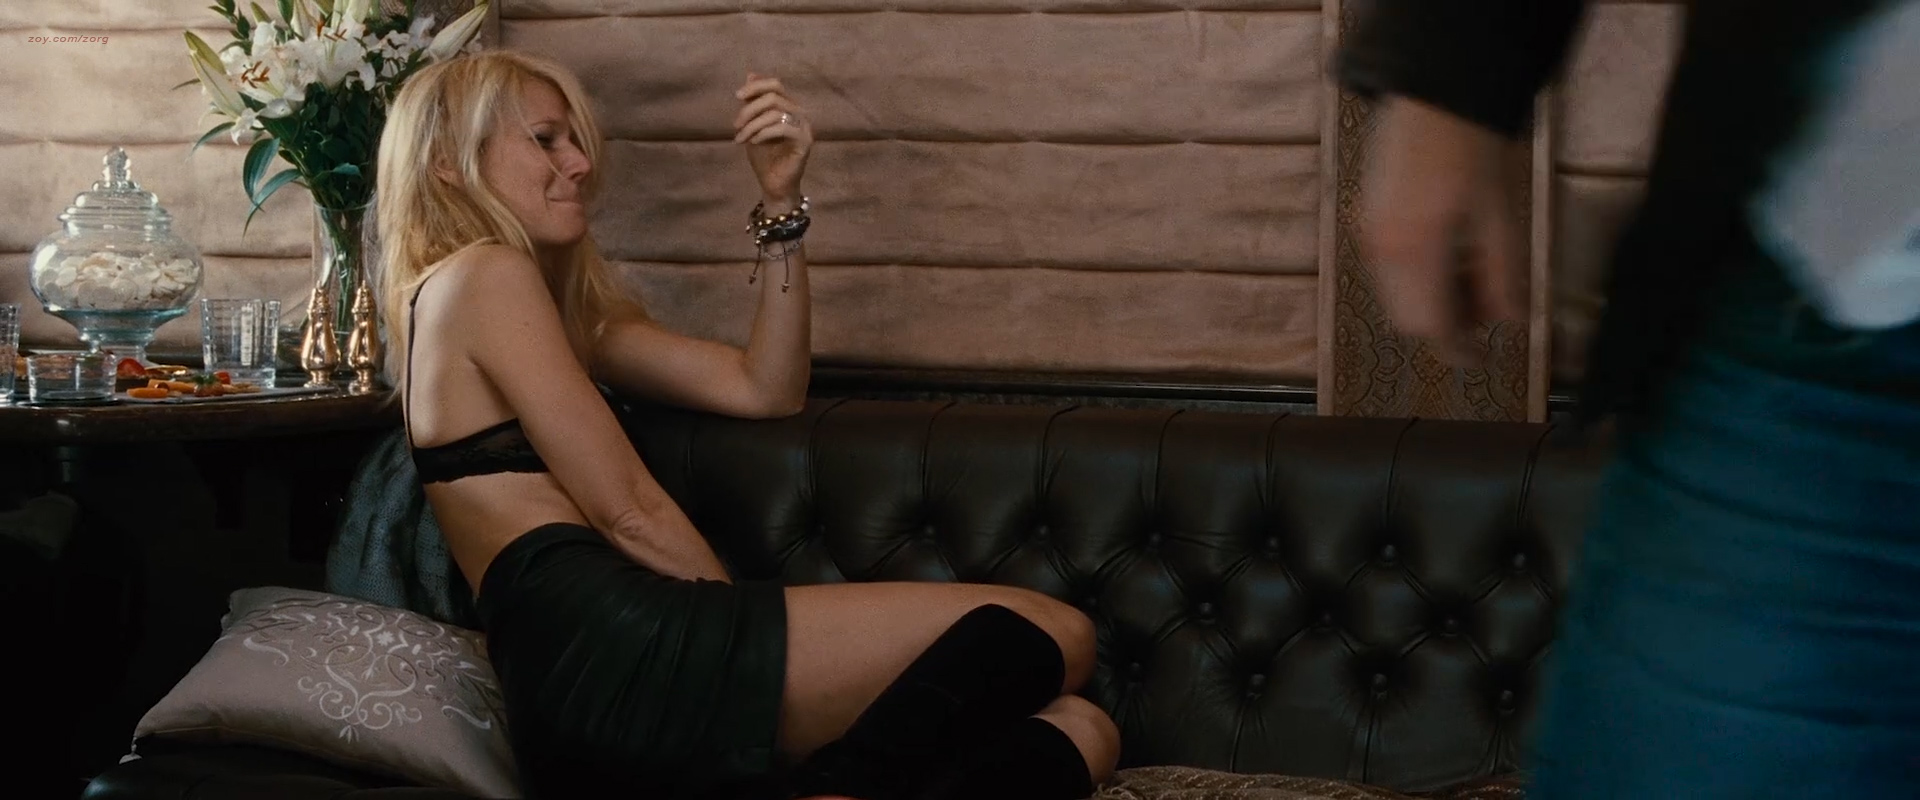 Leighton Meester hot and Gwyneth Paltrow sexy in lingerie - Country Strong (2010) hd1080p (4)